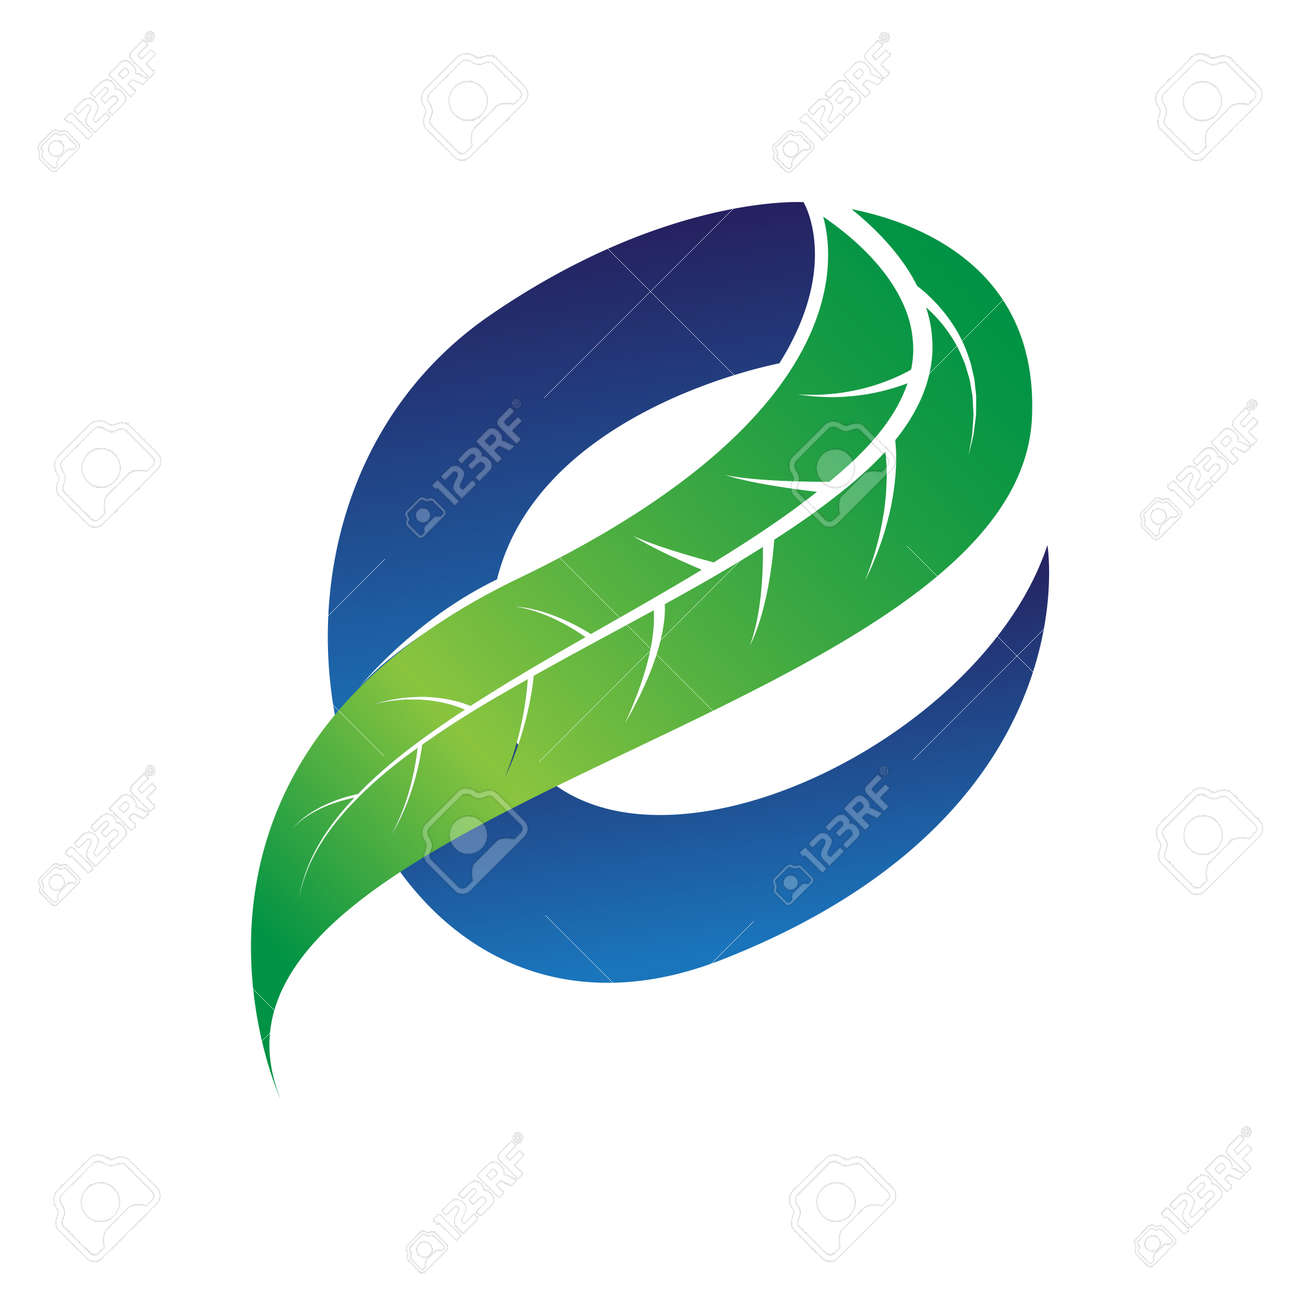 green and blue letter e for eco companies with leaf illustration - 158035809